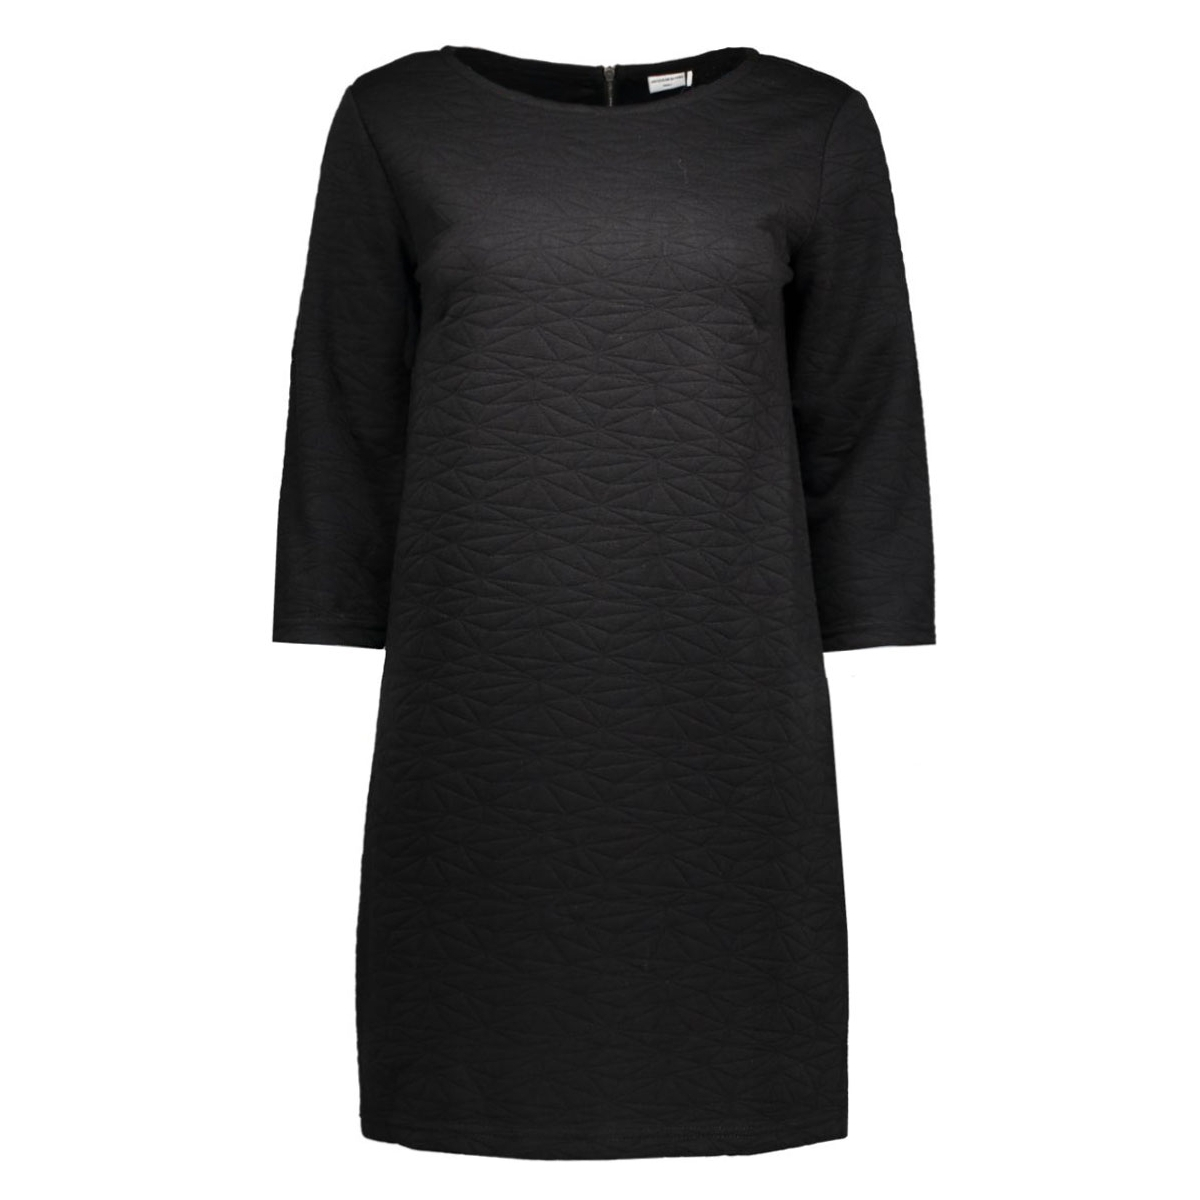 jdycase 3/4 zip dress swt 15126309 jacqueline de yong jurk black